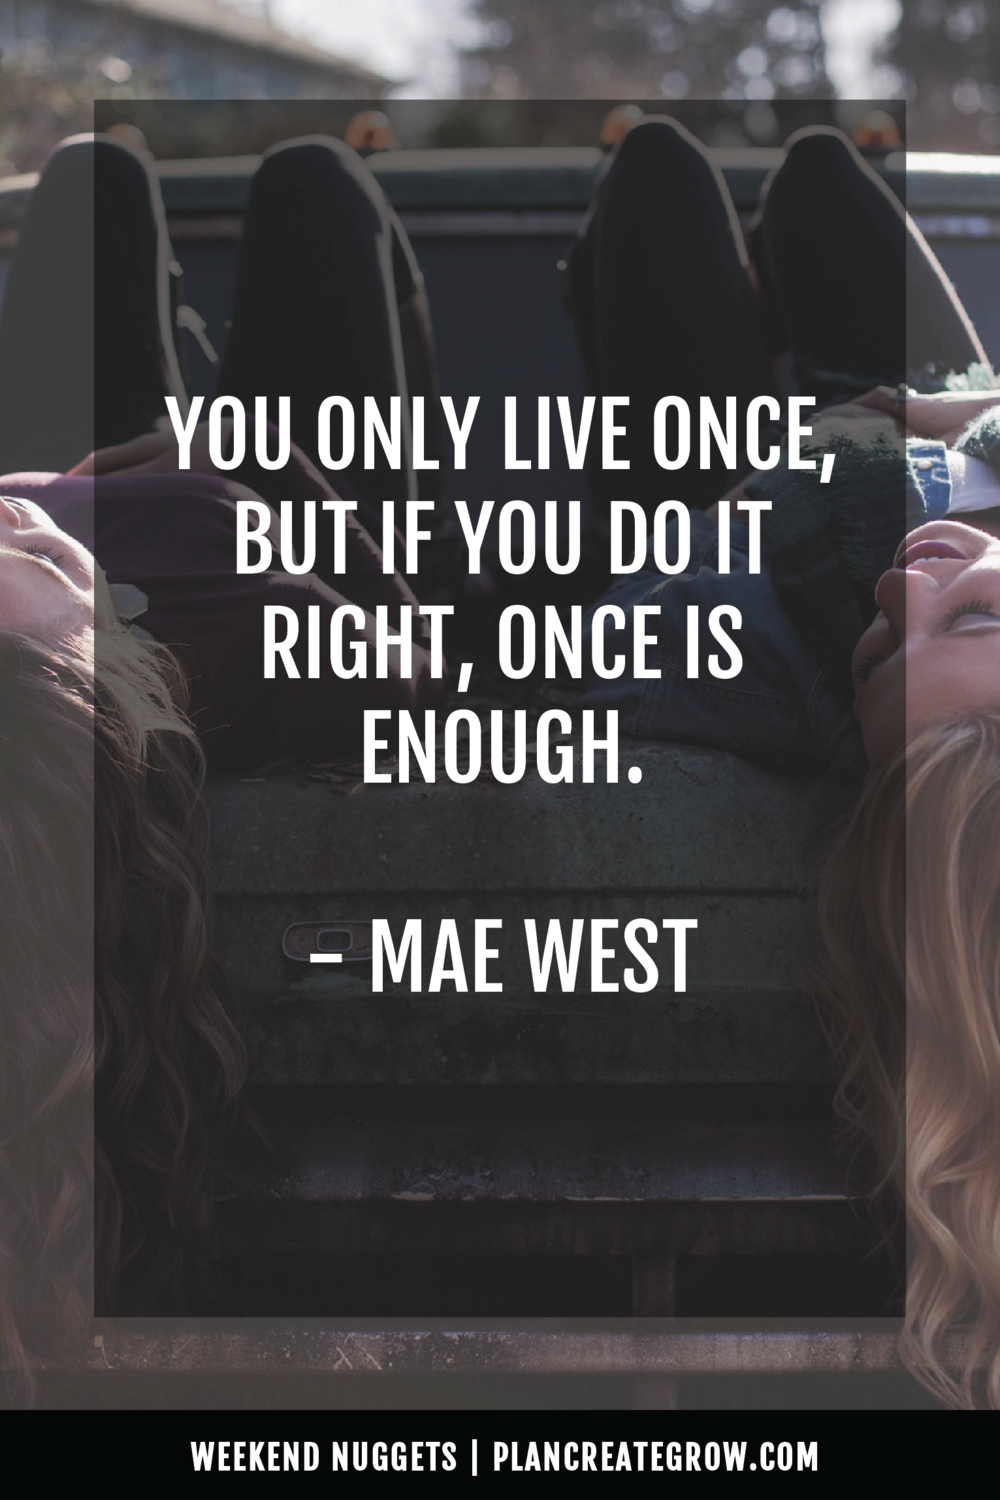 """You only live once, but if you do it right, once is enough."" - Mae West  This image forms part of a series called Weekend Nuggets - a collection of quotes and ideas curated to delight and inspire - shared each weekend. For more, visit plancreategrow.com/weekend-nuggets."